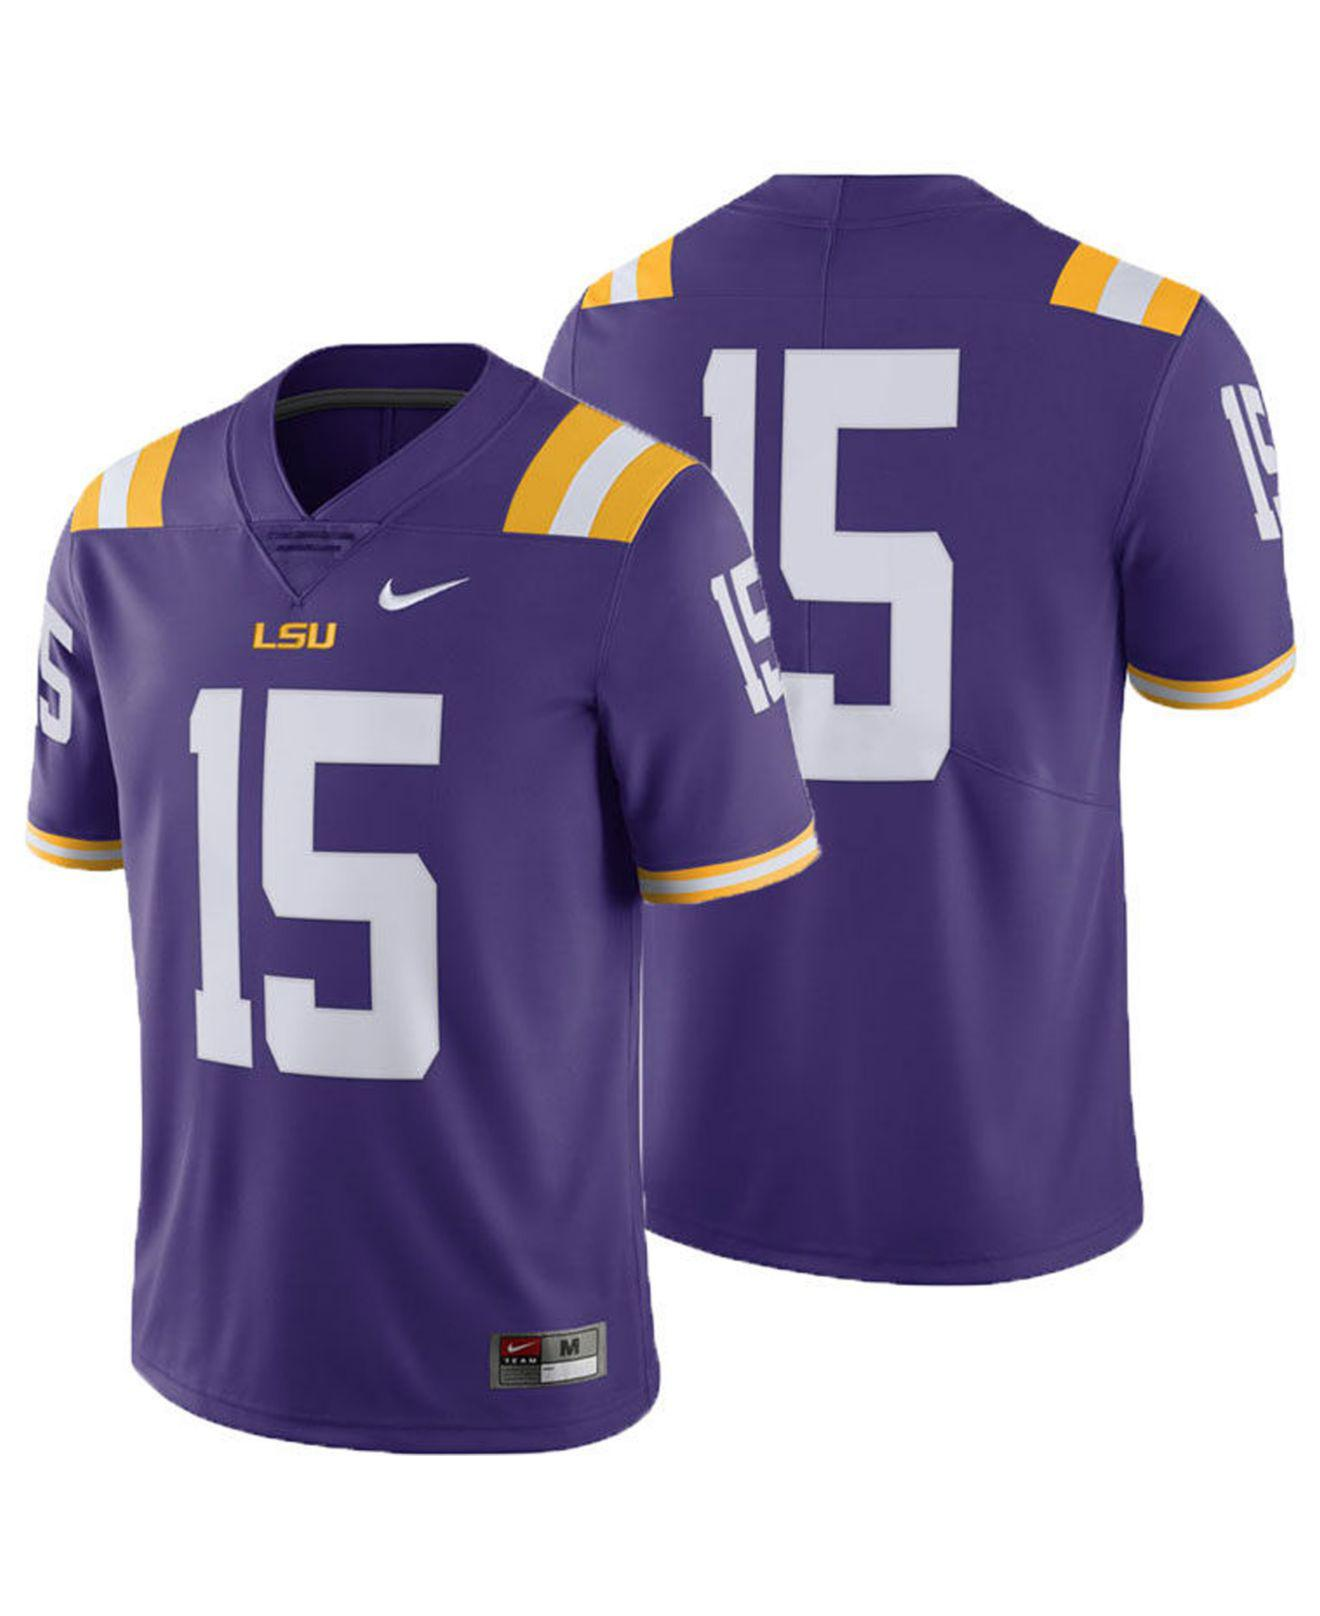 Lyst - Nike Lsu Tigers Limited Football Jersey in Purple for Men a38c29336